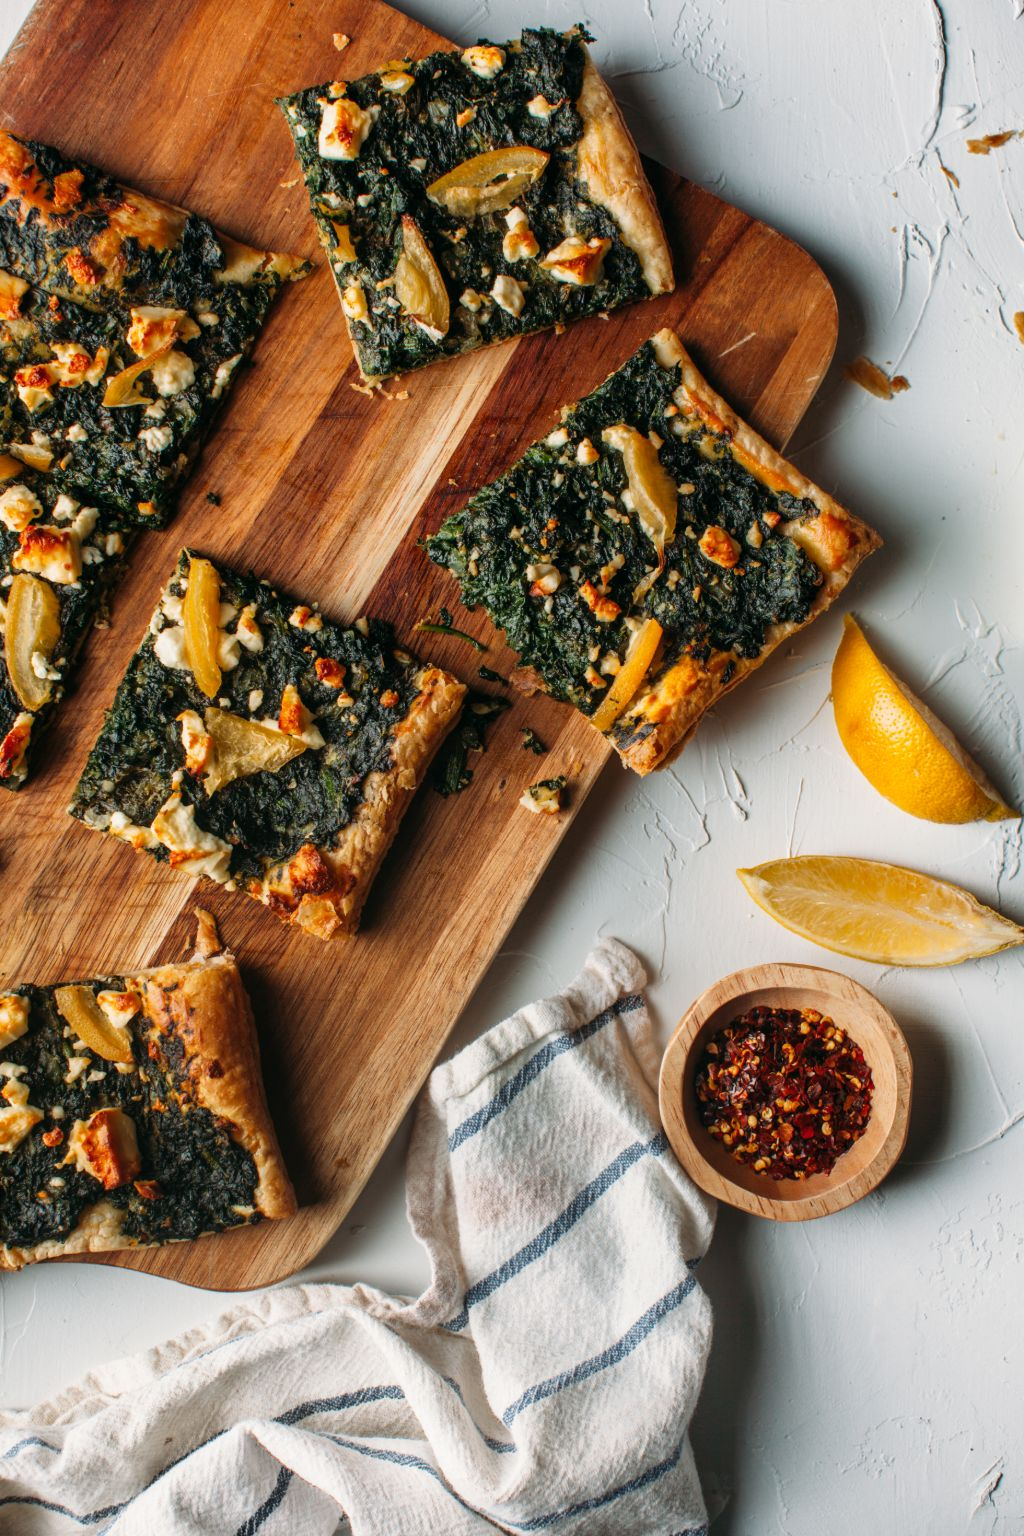 Spinach, Feta, and Preserved Lemon Puff Pastry Pizza - Tastemaker Blog